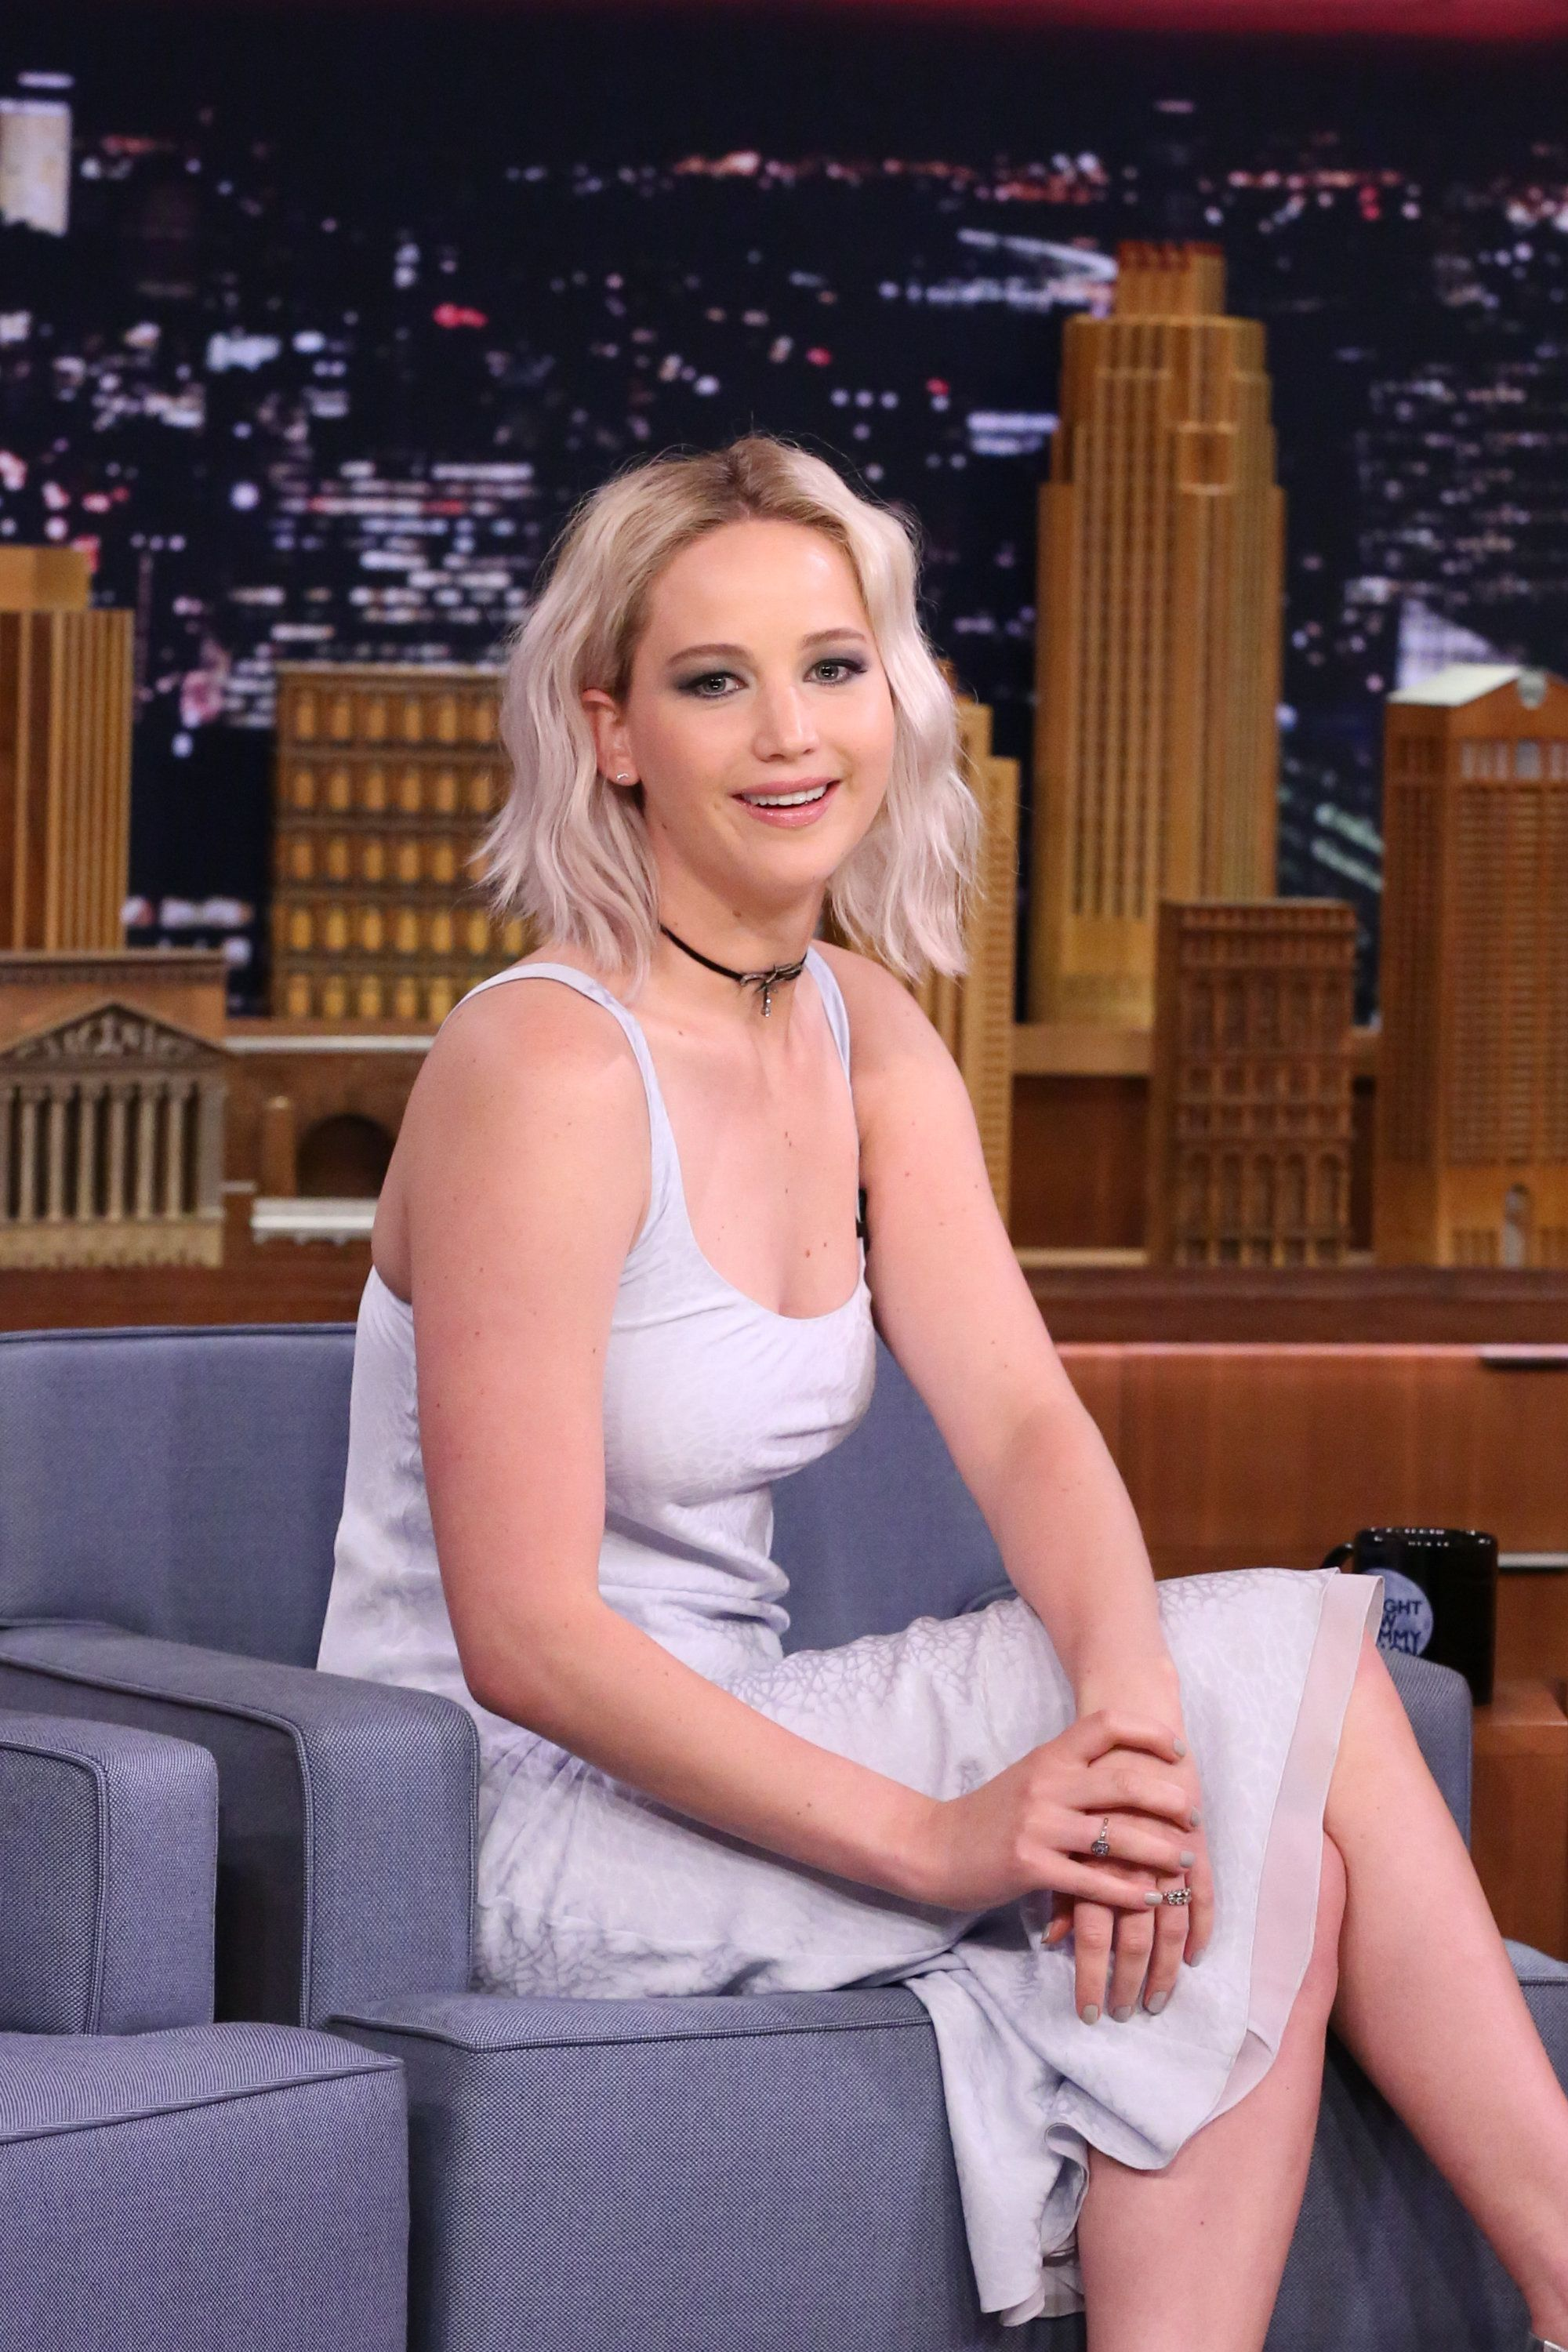 THE TONIGHT SHOW STARRING JIMMY FALLON -- Episode 0477 -- Pictured: Actress Jennifer Lawrence on May 23, 2016 -- (Photo by: Andrew Lipovsky/NBC/NBCU Photo Bank via Getty Images)